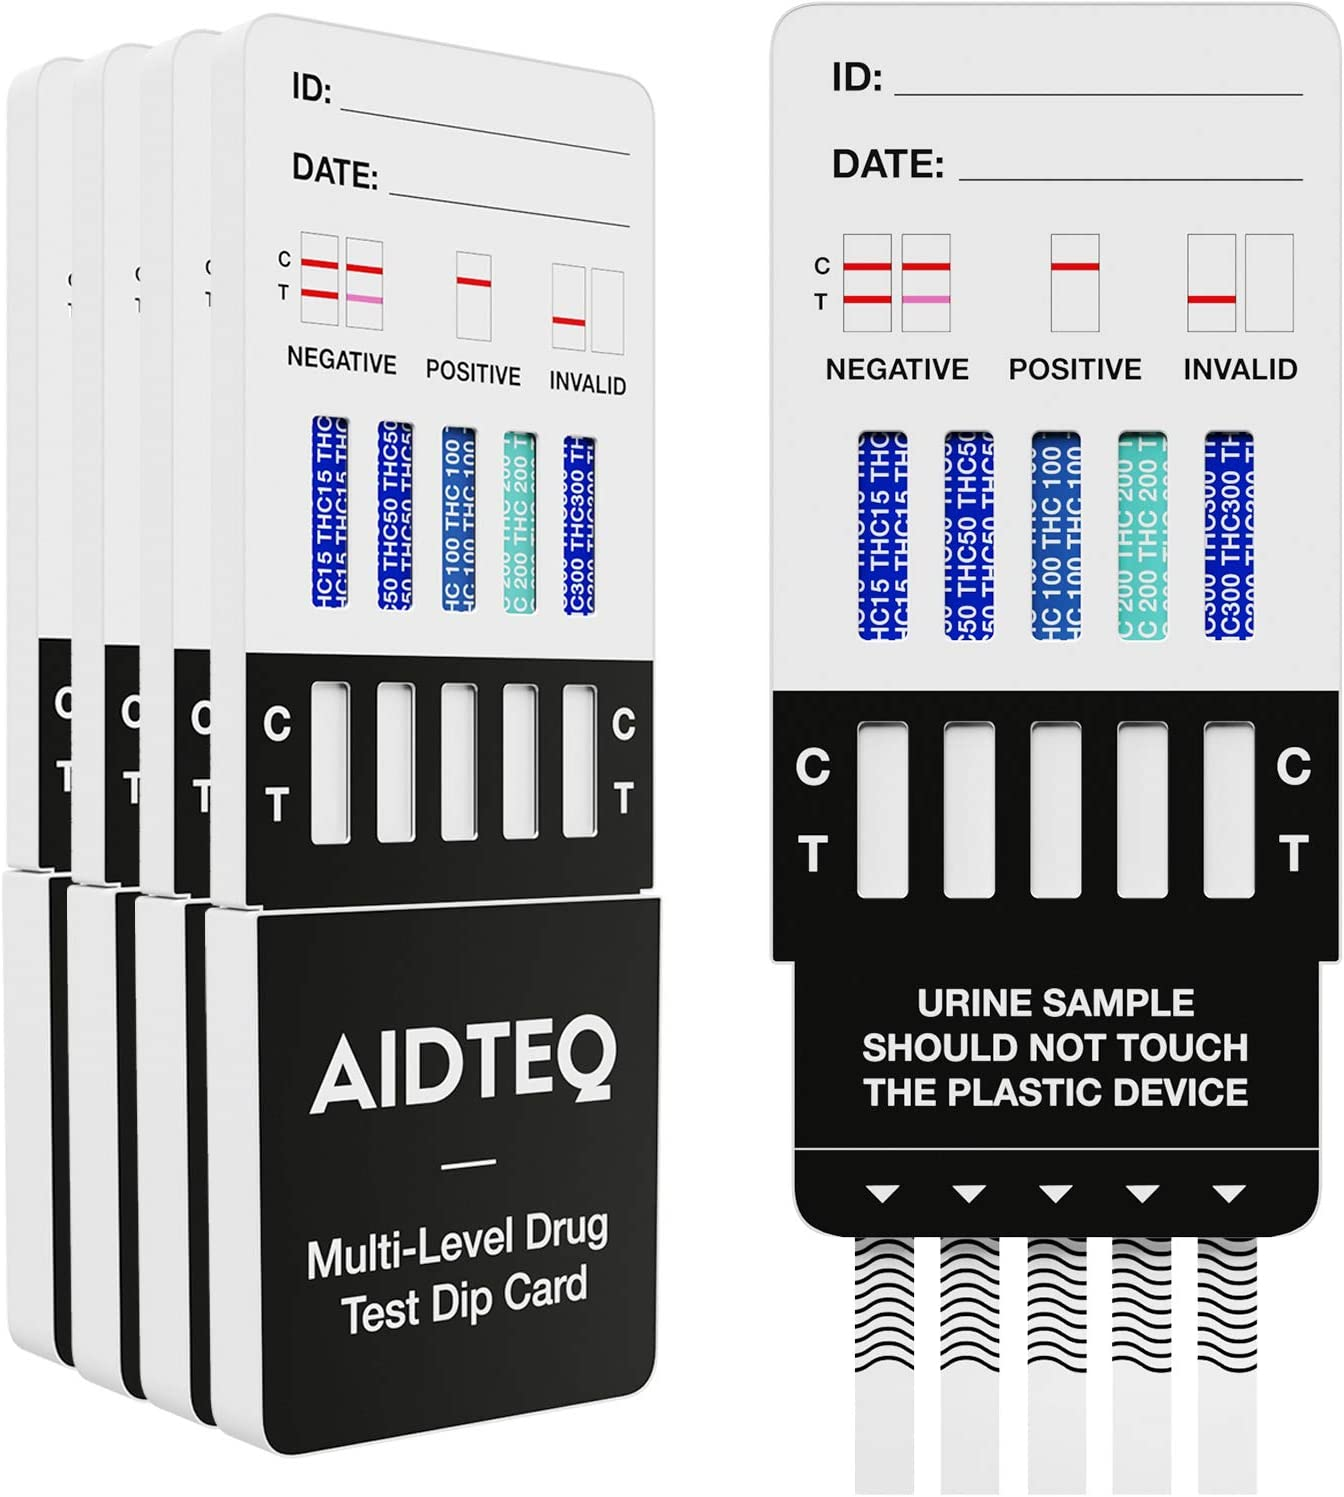 5 x Aidteq Professional 5 Level Marijuana Rapid Drug Test Dip Cards | Urine Drug Test | Test for The Presence of Cannabis (THC) at 300ng/mL, 200ng/mL, 100ng/mL, 50ng/mL, and 15ng/mL